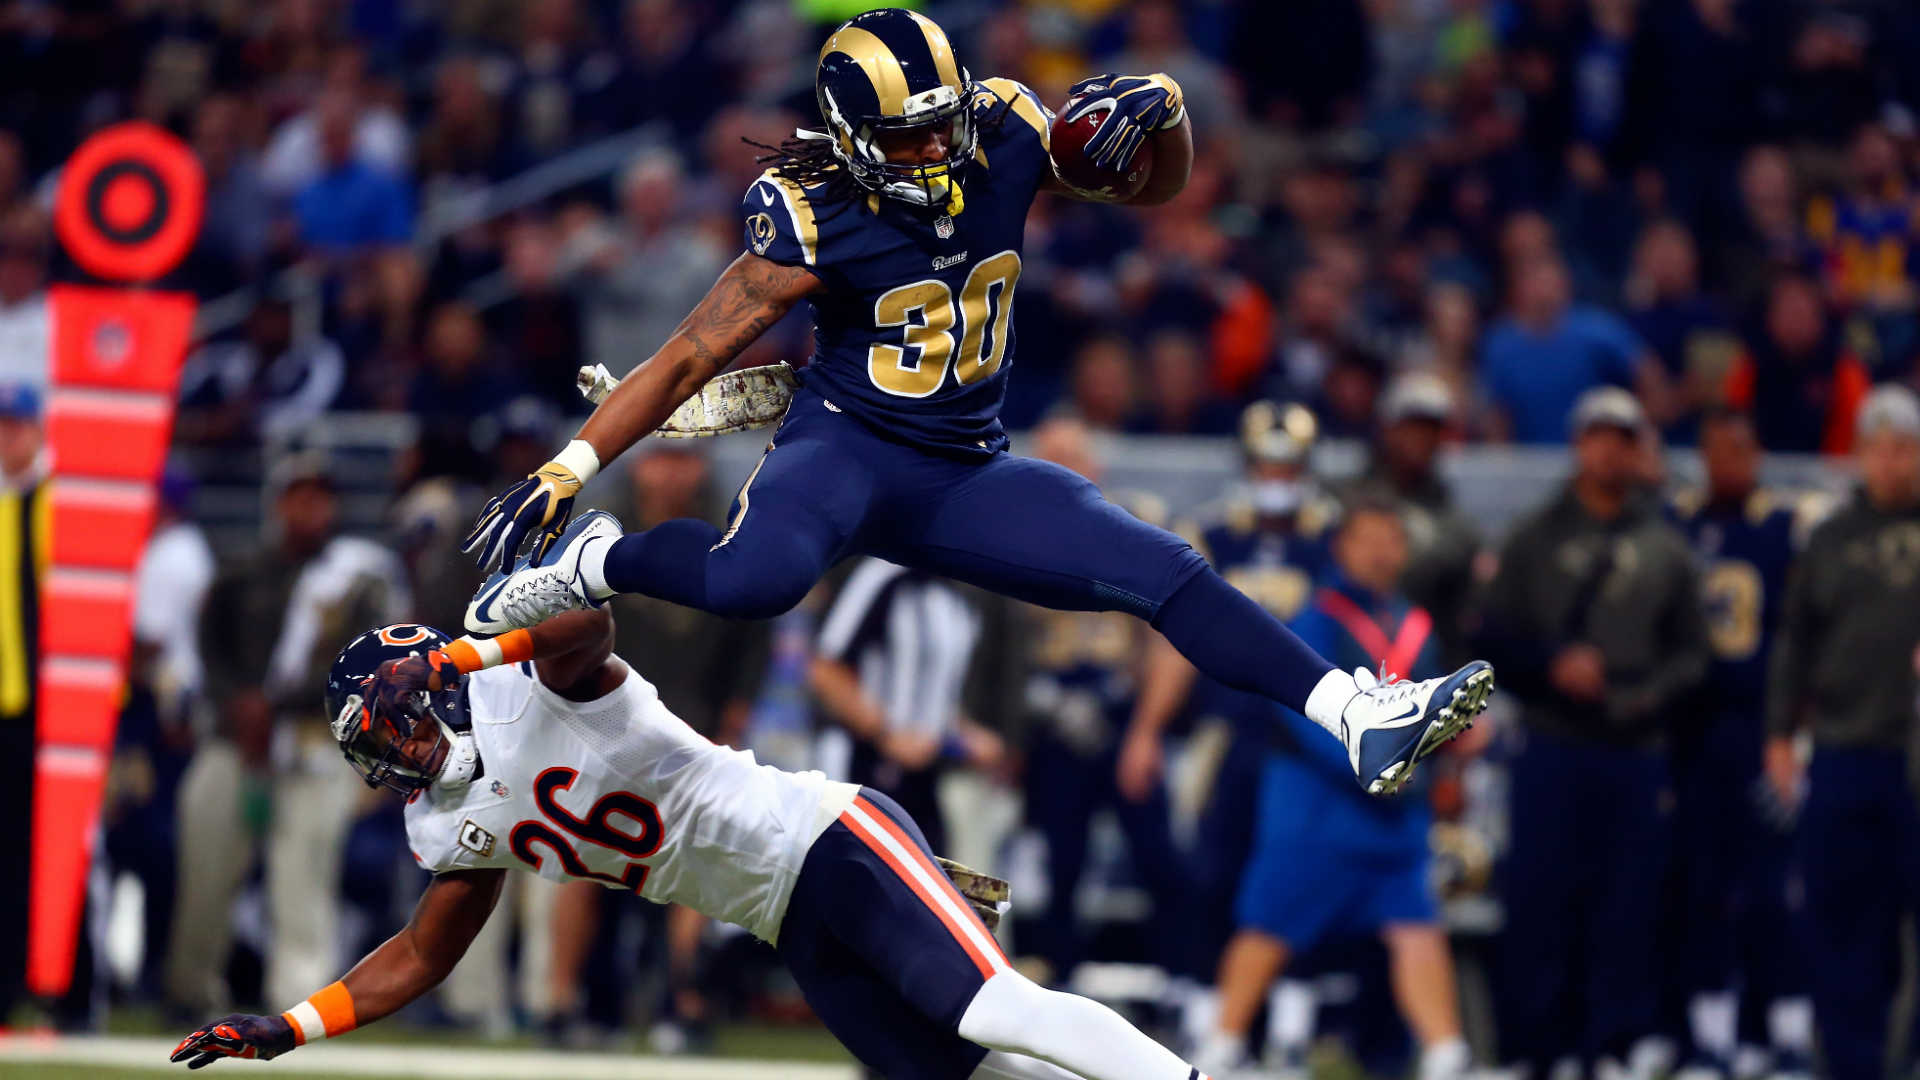 Todd Gurley hopes to continue bragging rights in the NFC West